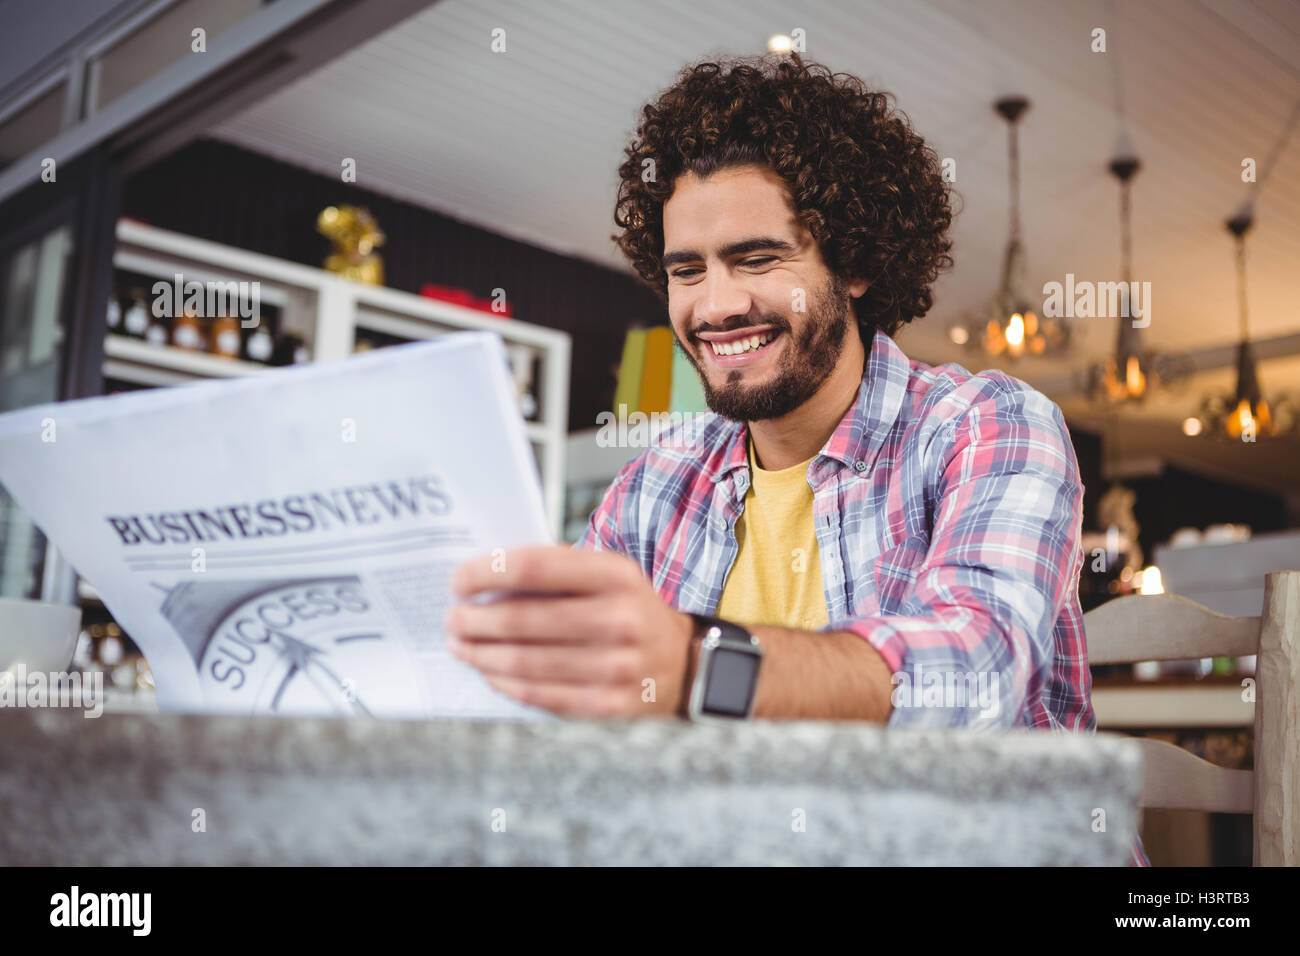 Man smiling while reading newspaper - Stock Image